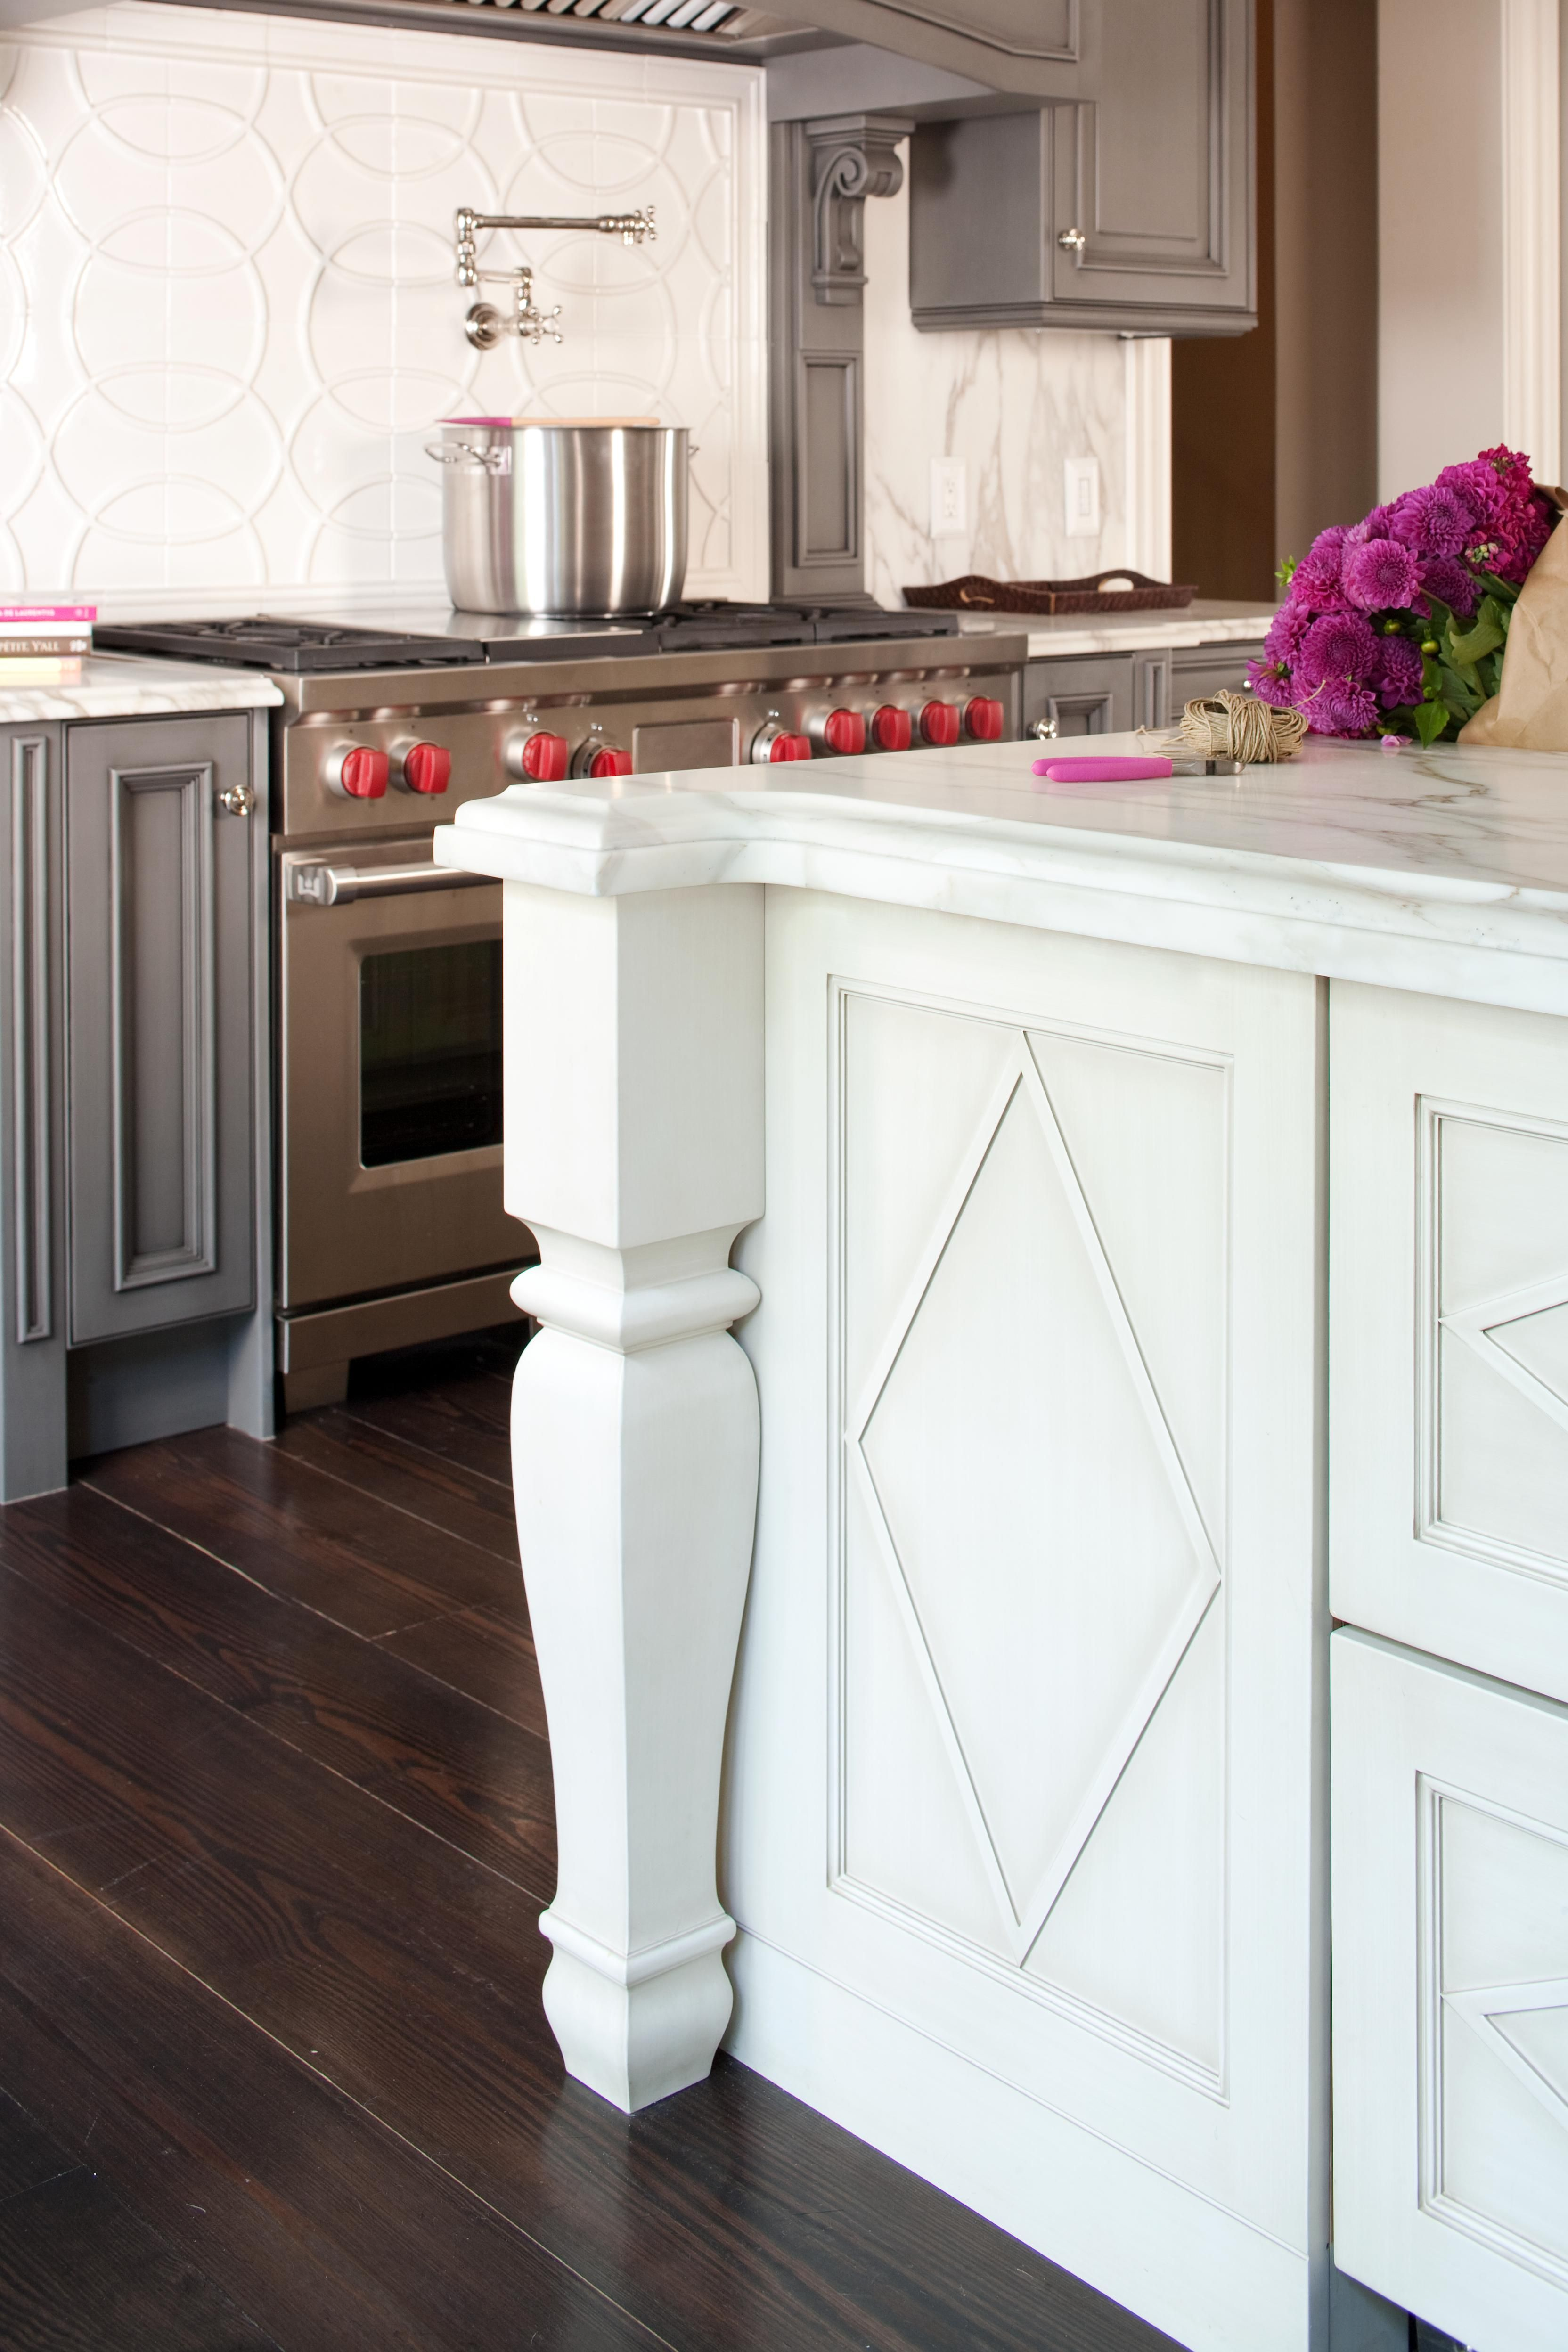 22 Kitchen Cabinetry Trends You Ll Love For Years To Come Contrasting Kitchen Island Kitchen Remodel Kitchen Cabinet Trends